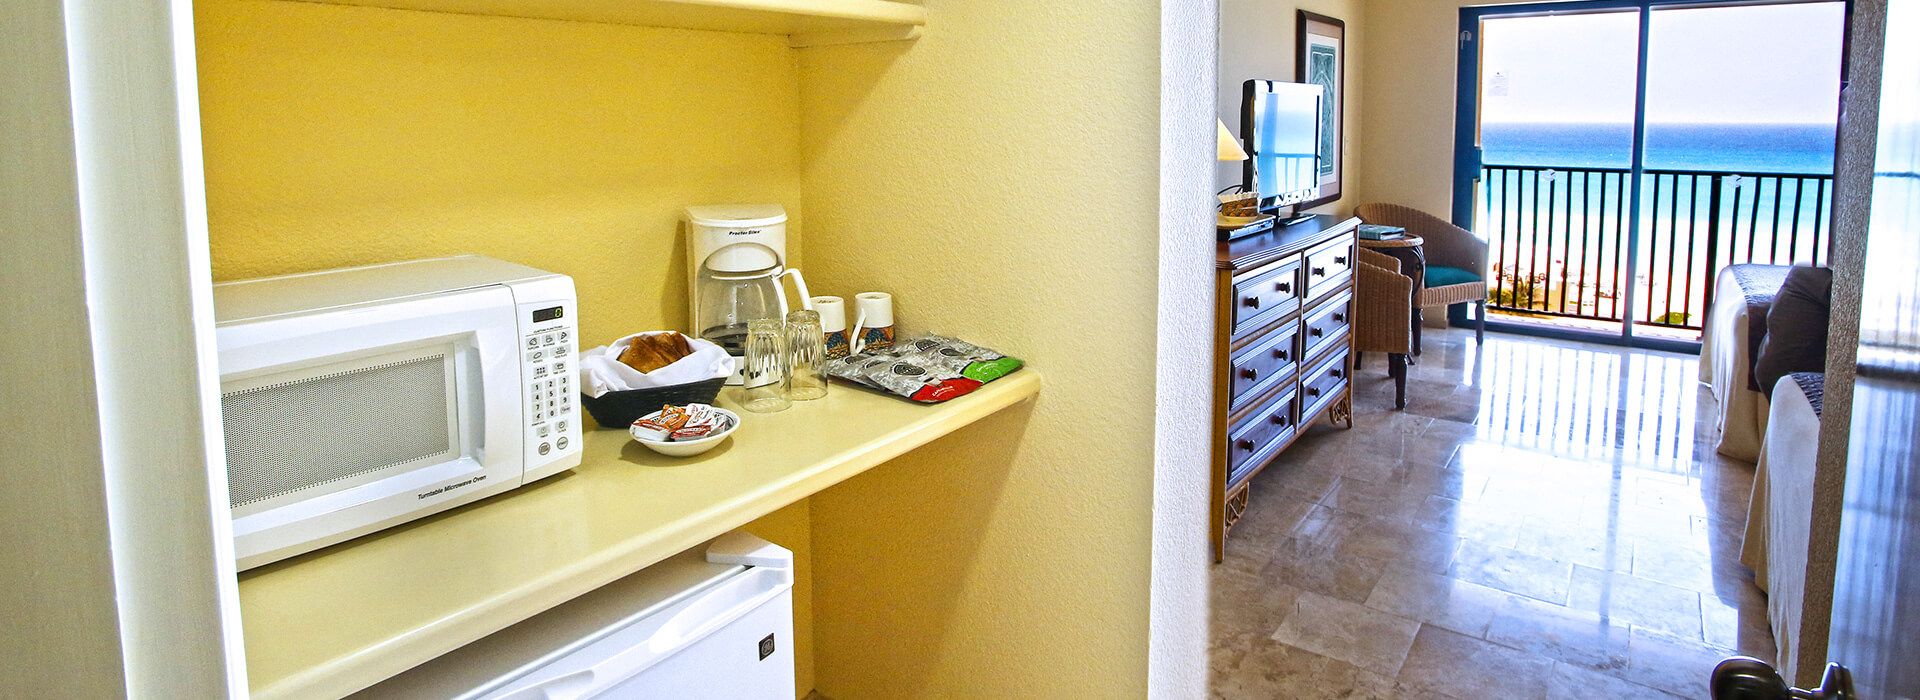 Beachfront Junior Suite fully equipped including kitchen appliances